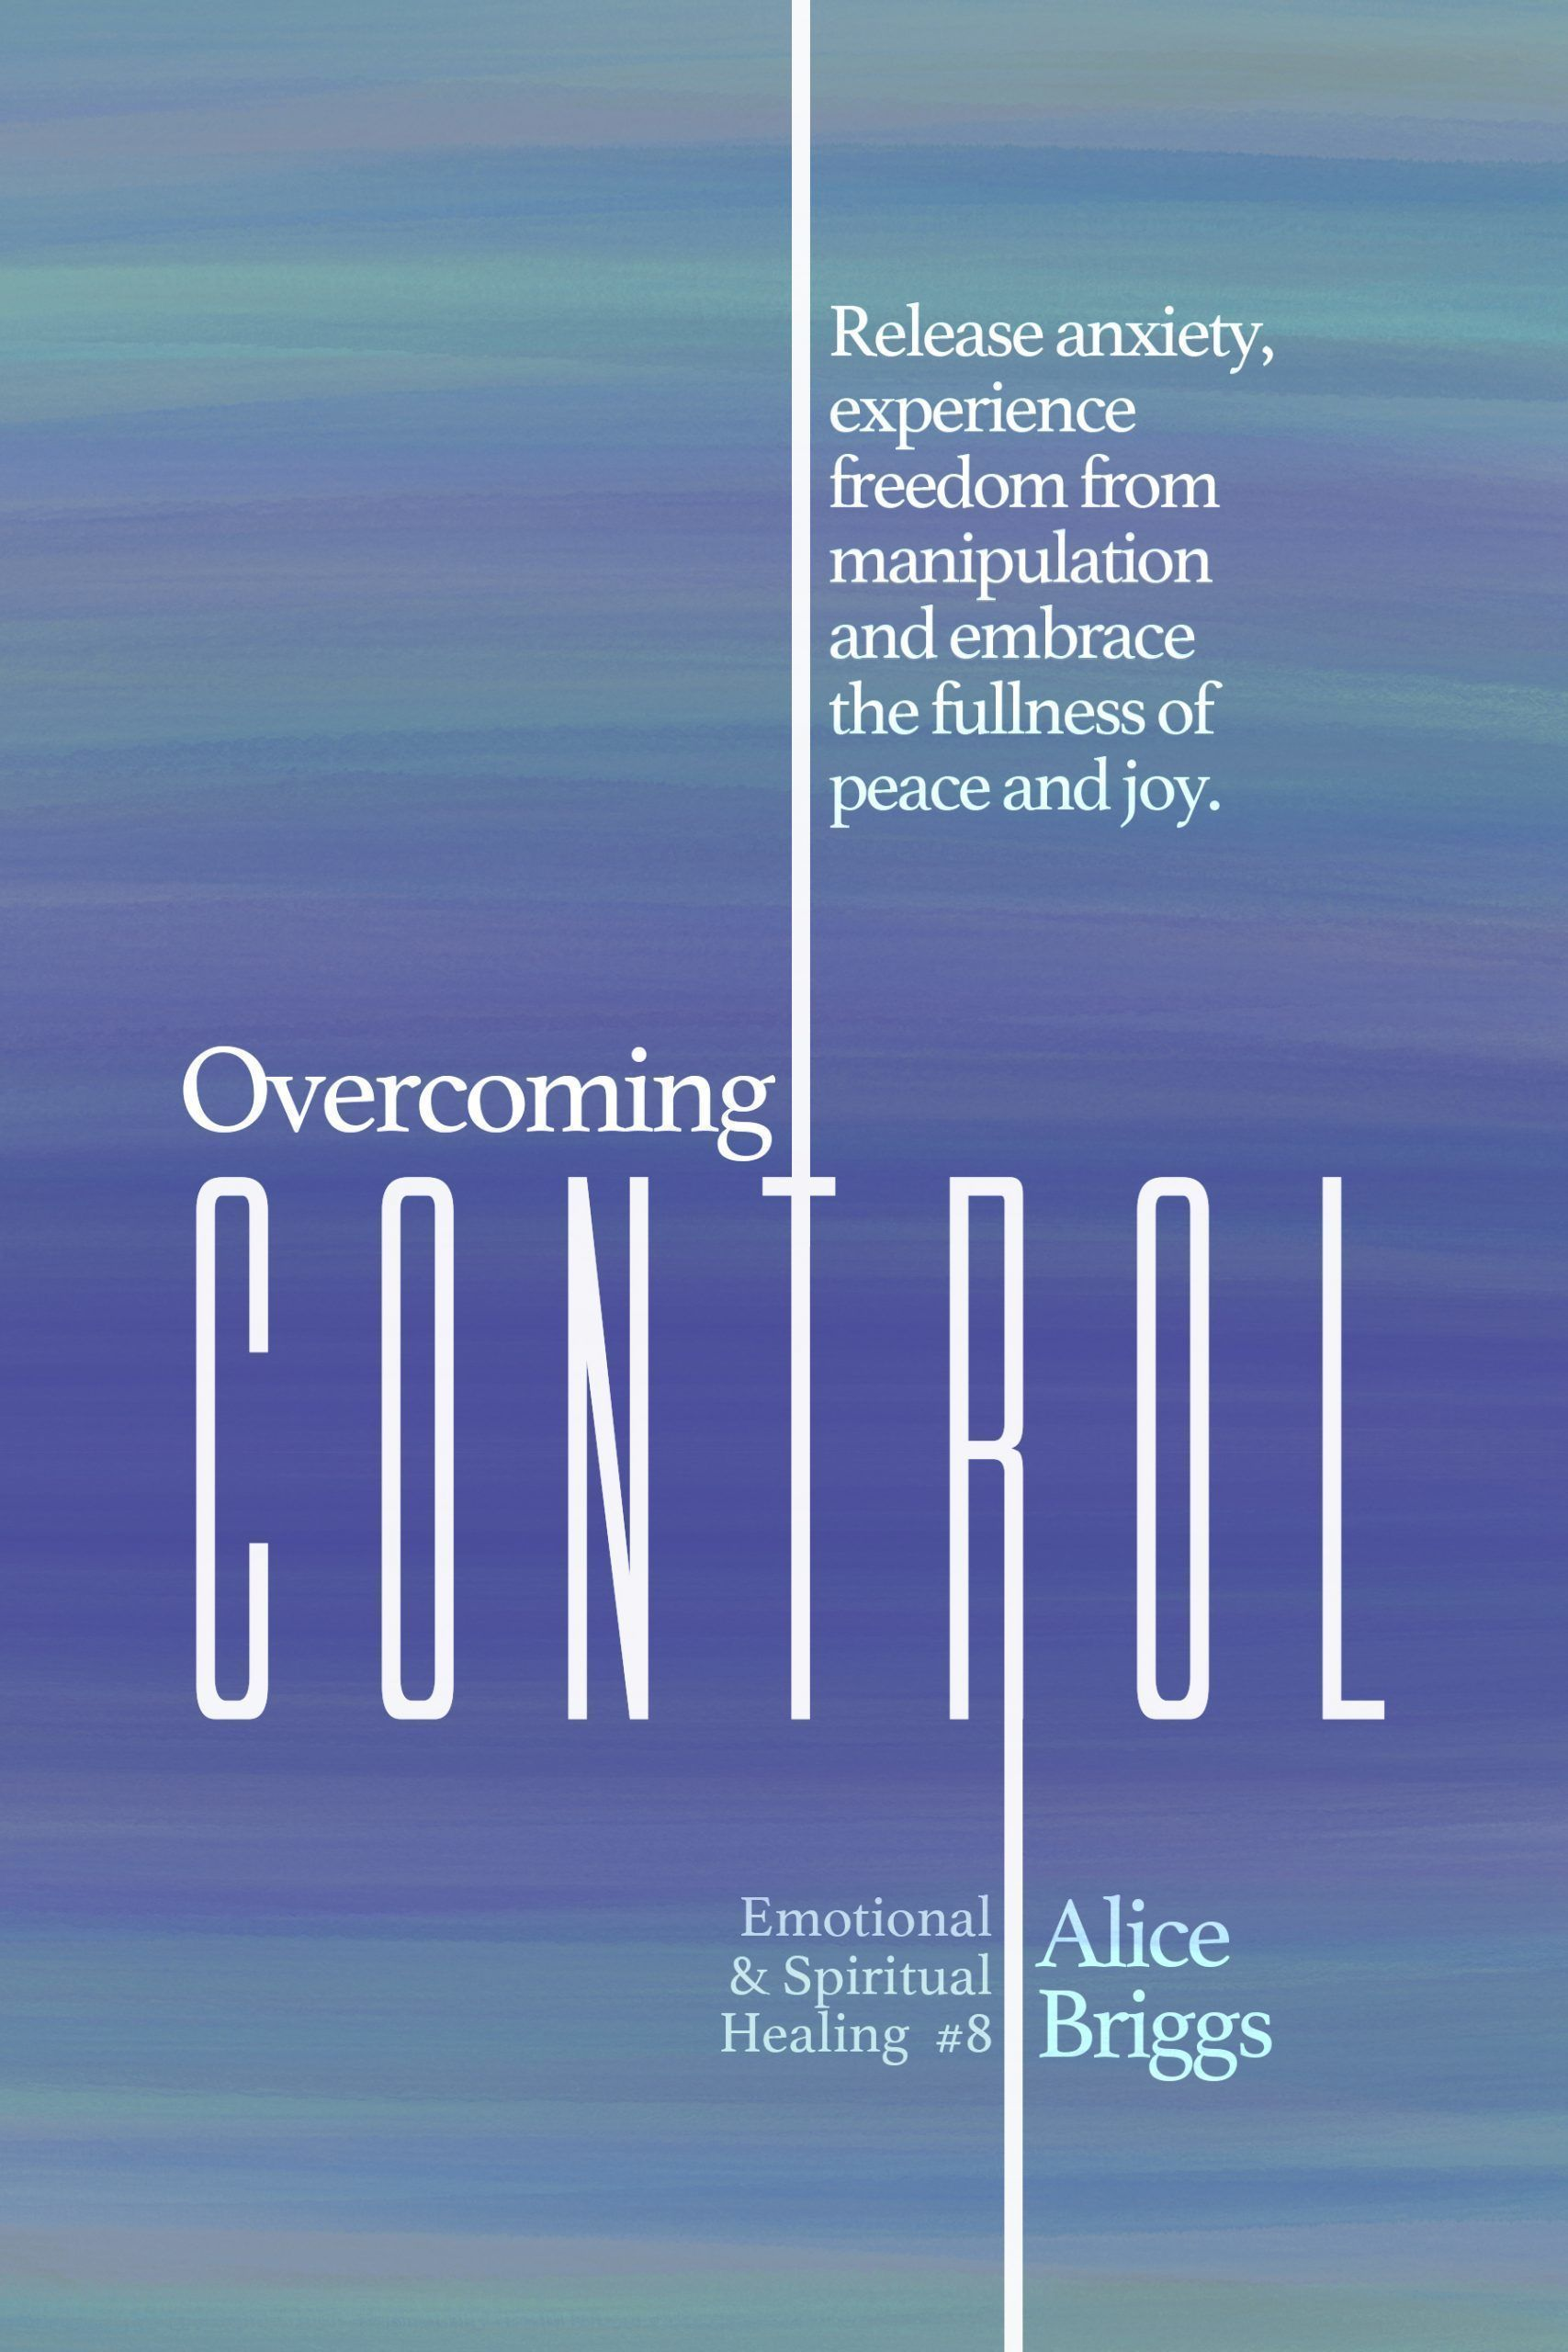 Overcoming Control manipulation abuse